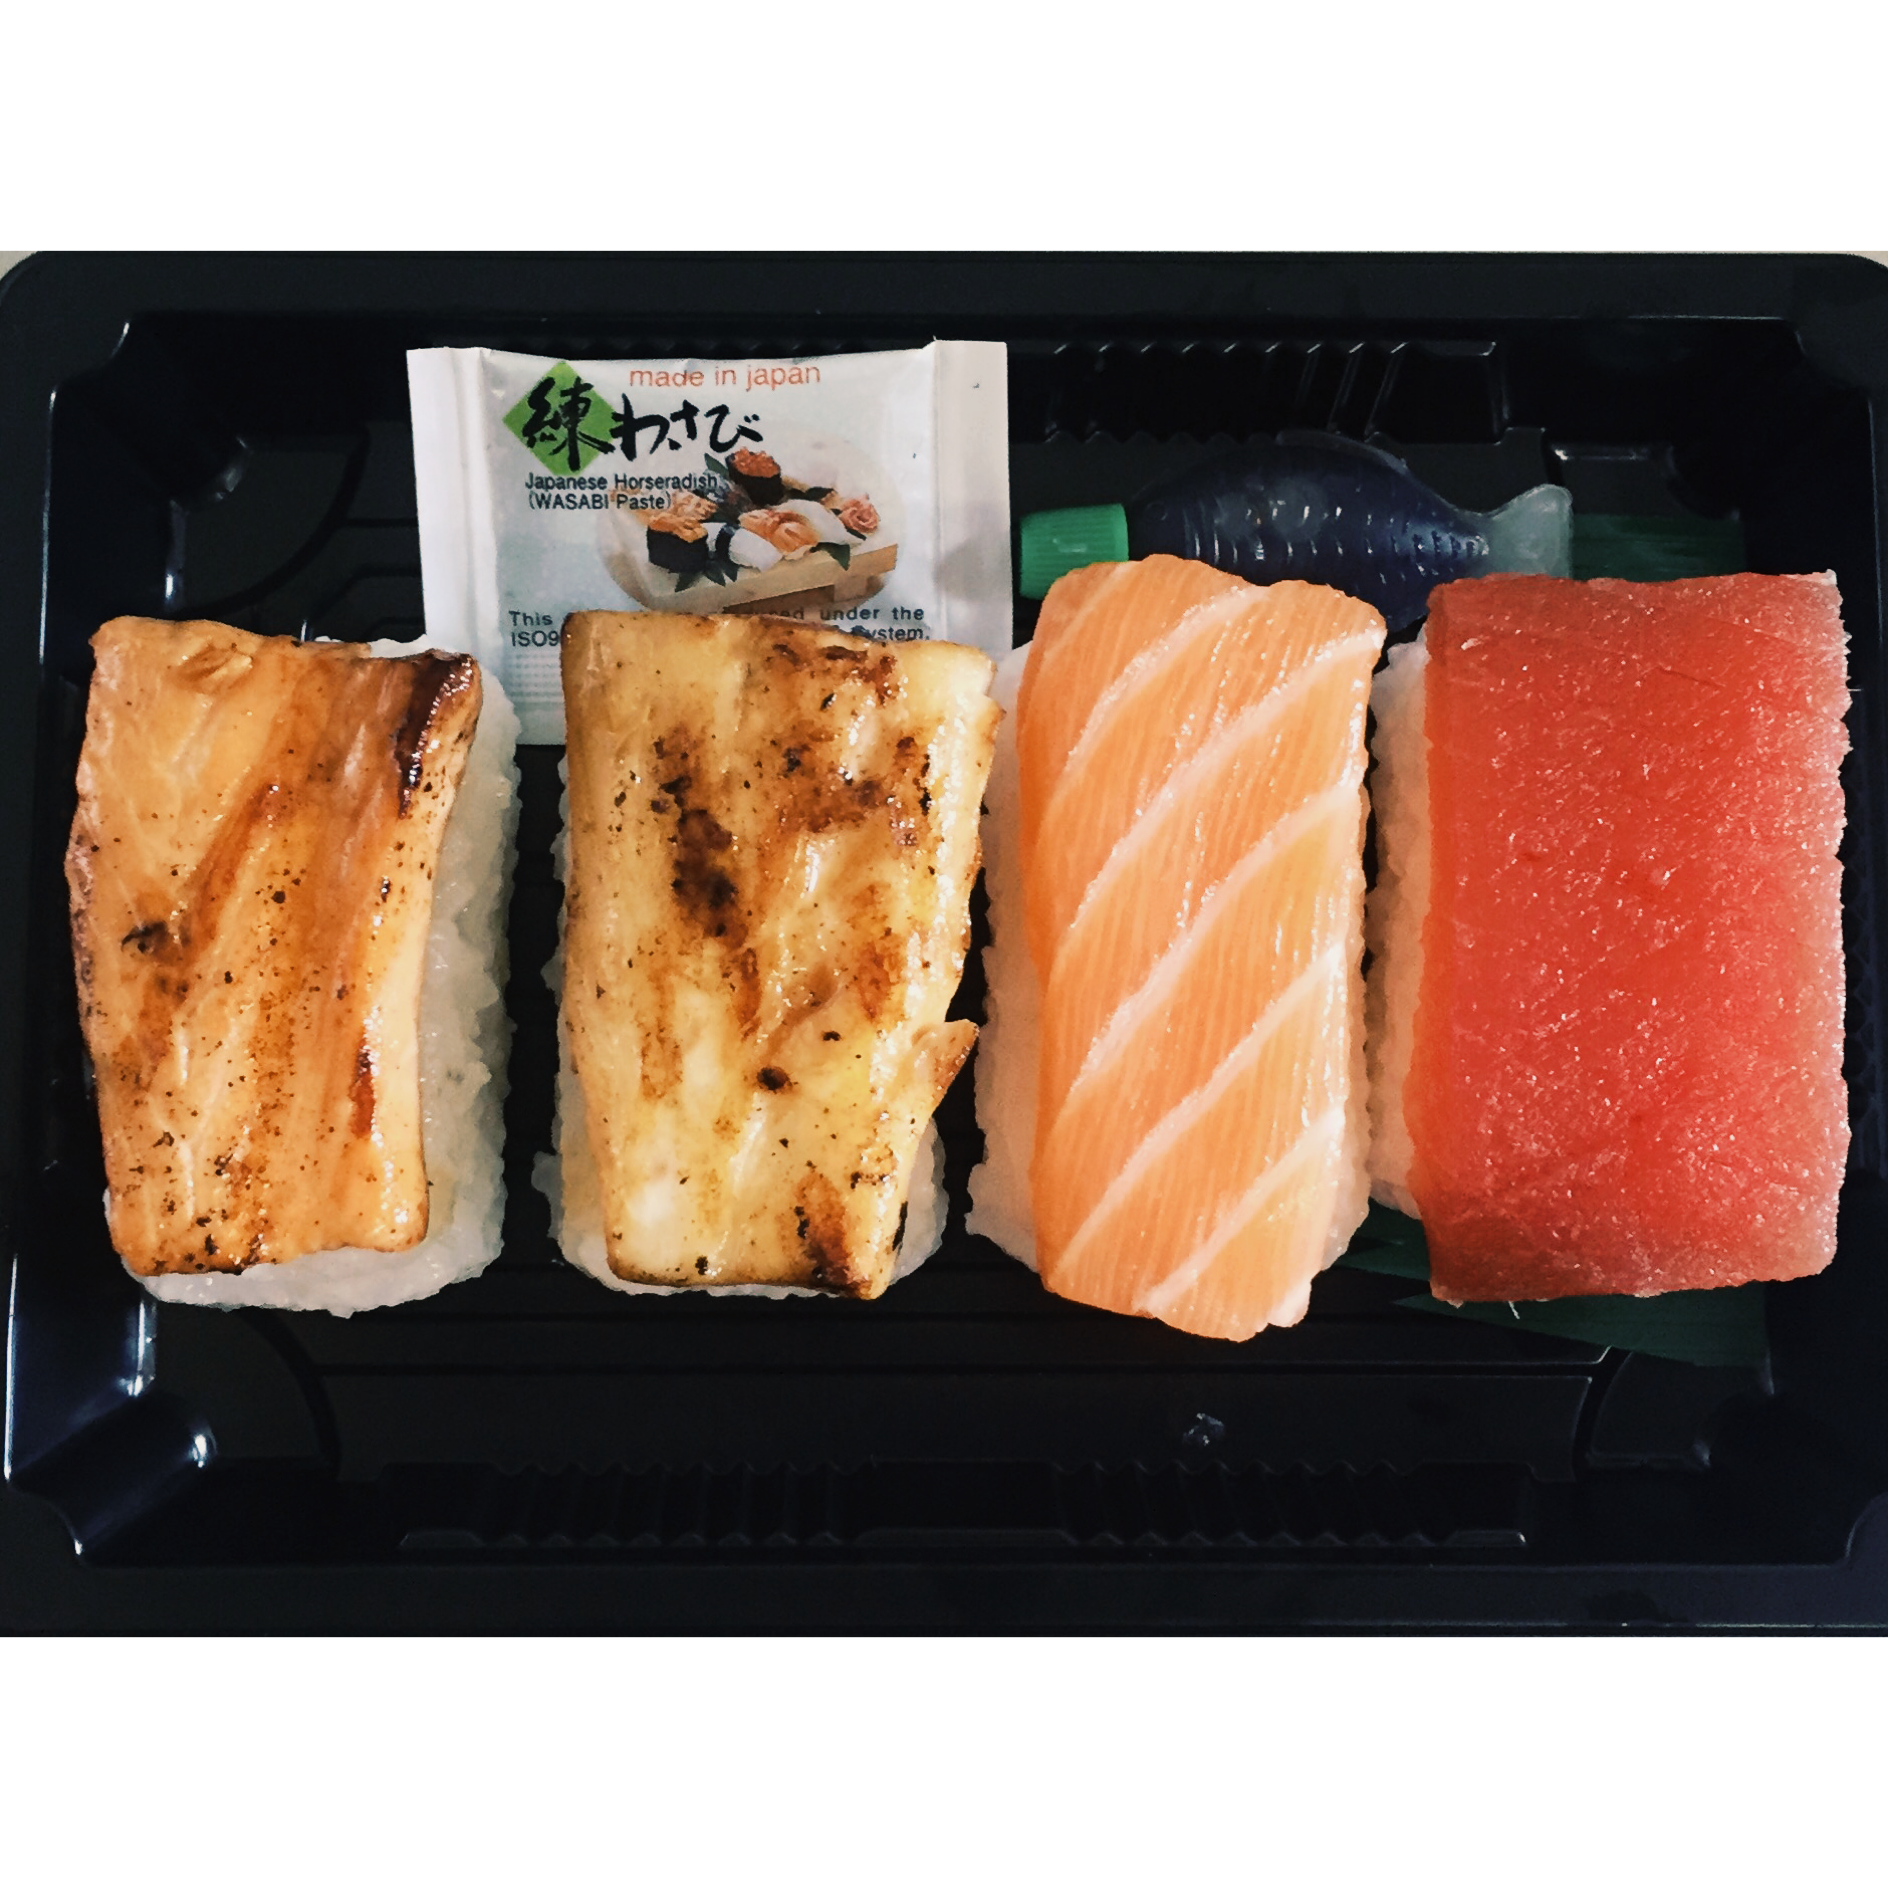 THE MIXED NIGIRI BOX - £6  2 x grilled teriyaki salmon, 2 x grilled teriyaki seabass, 2 x salmon nigiri